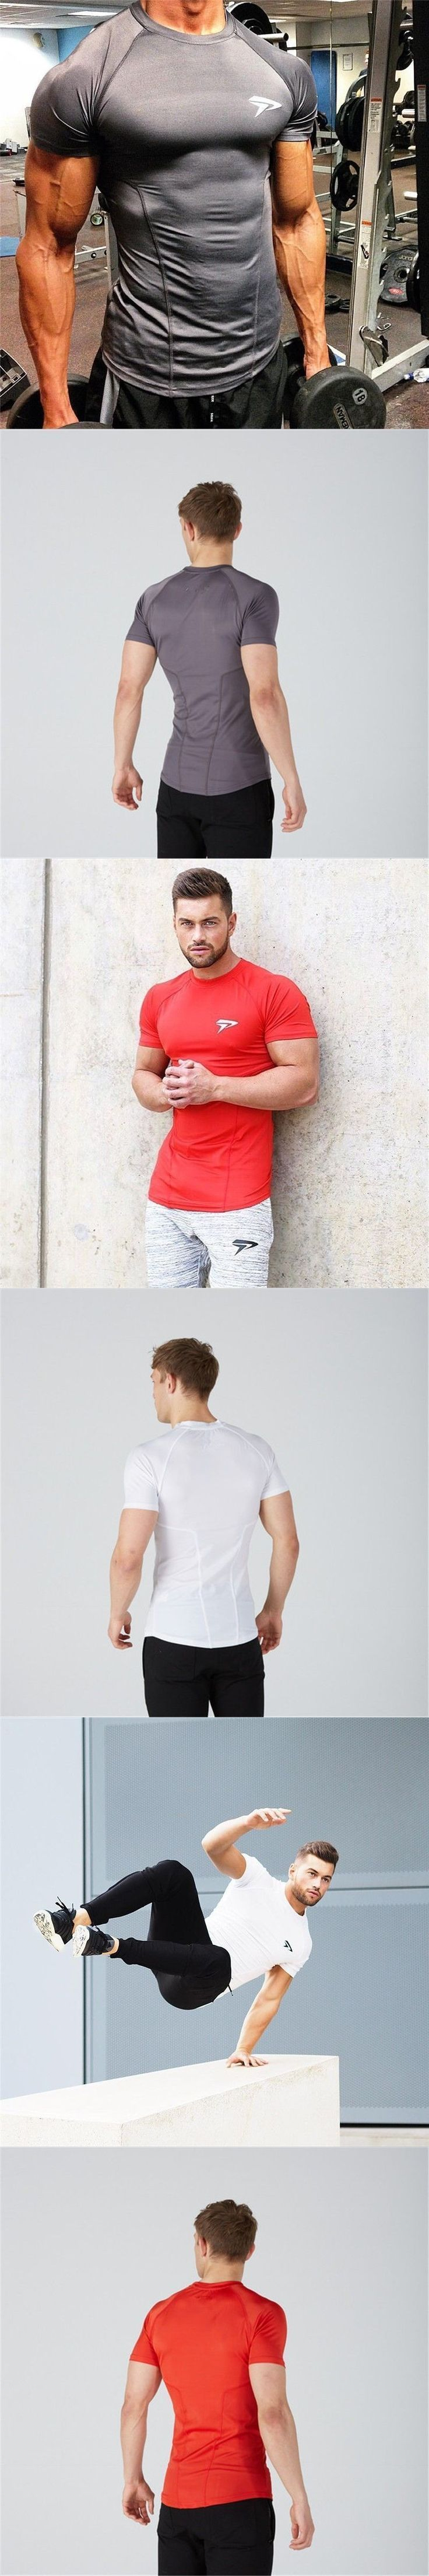 New high quality 2017 gymS leica polyester patchwork compressed T-shirt gyms male bodybuilding muscle men men's t shirts #menst-shirtsgym